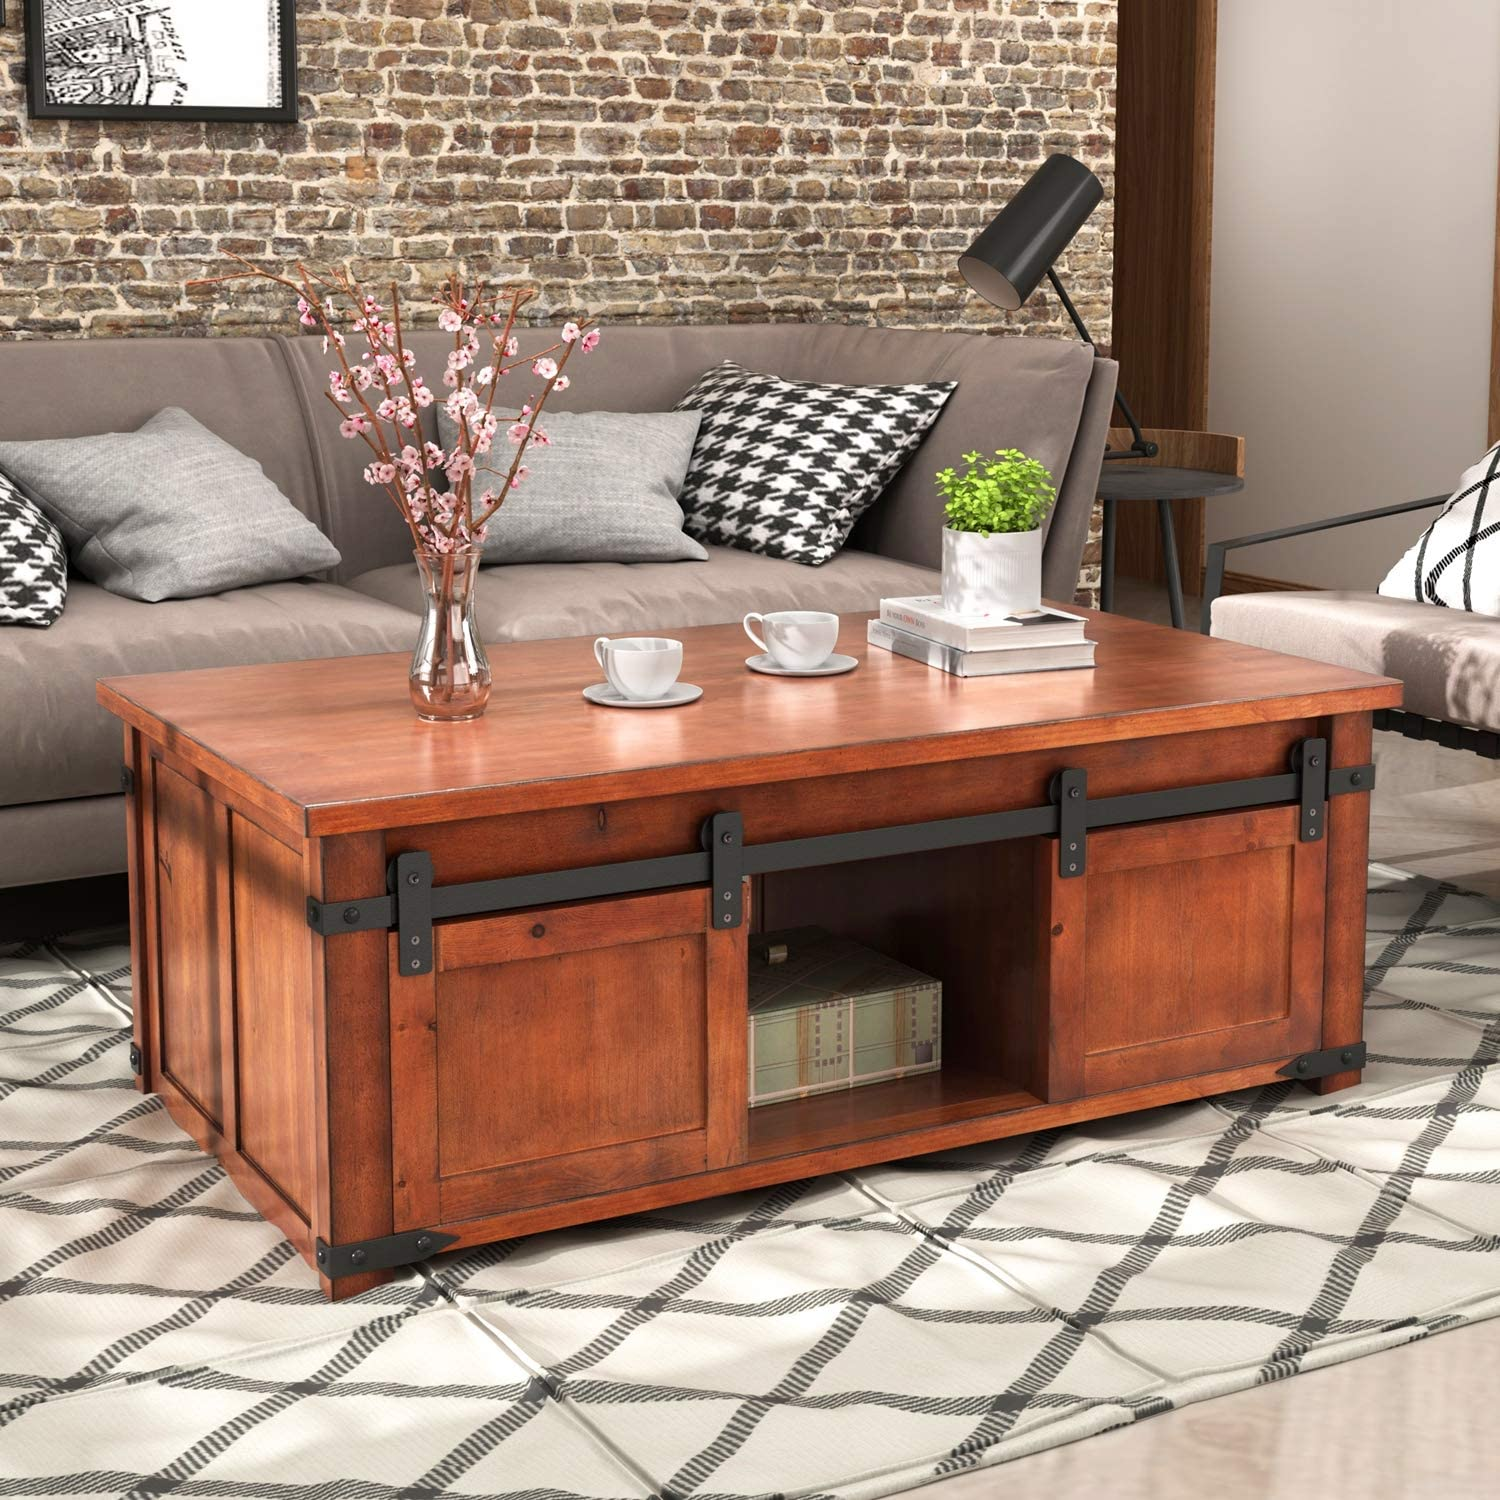 - Amazon.com: Coffee Table With Storage, Norcia Large Rustic Coffee